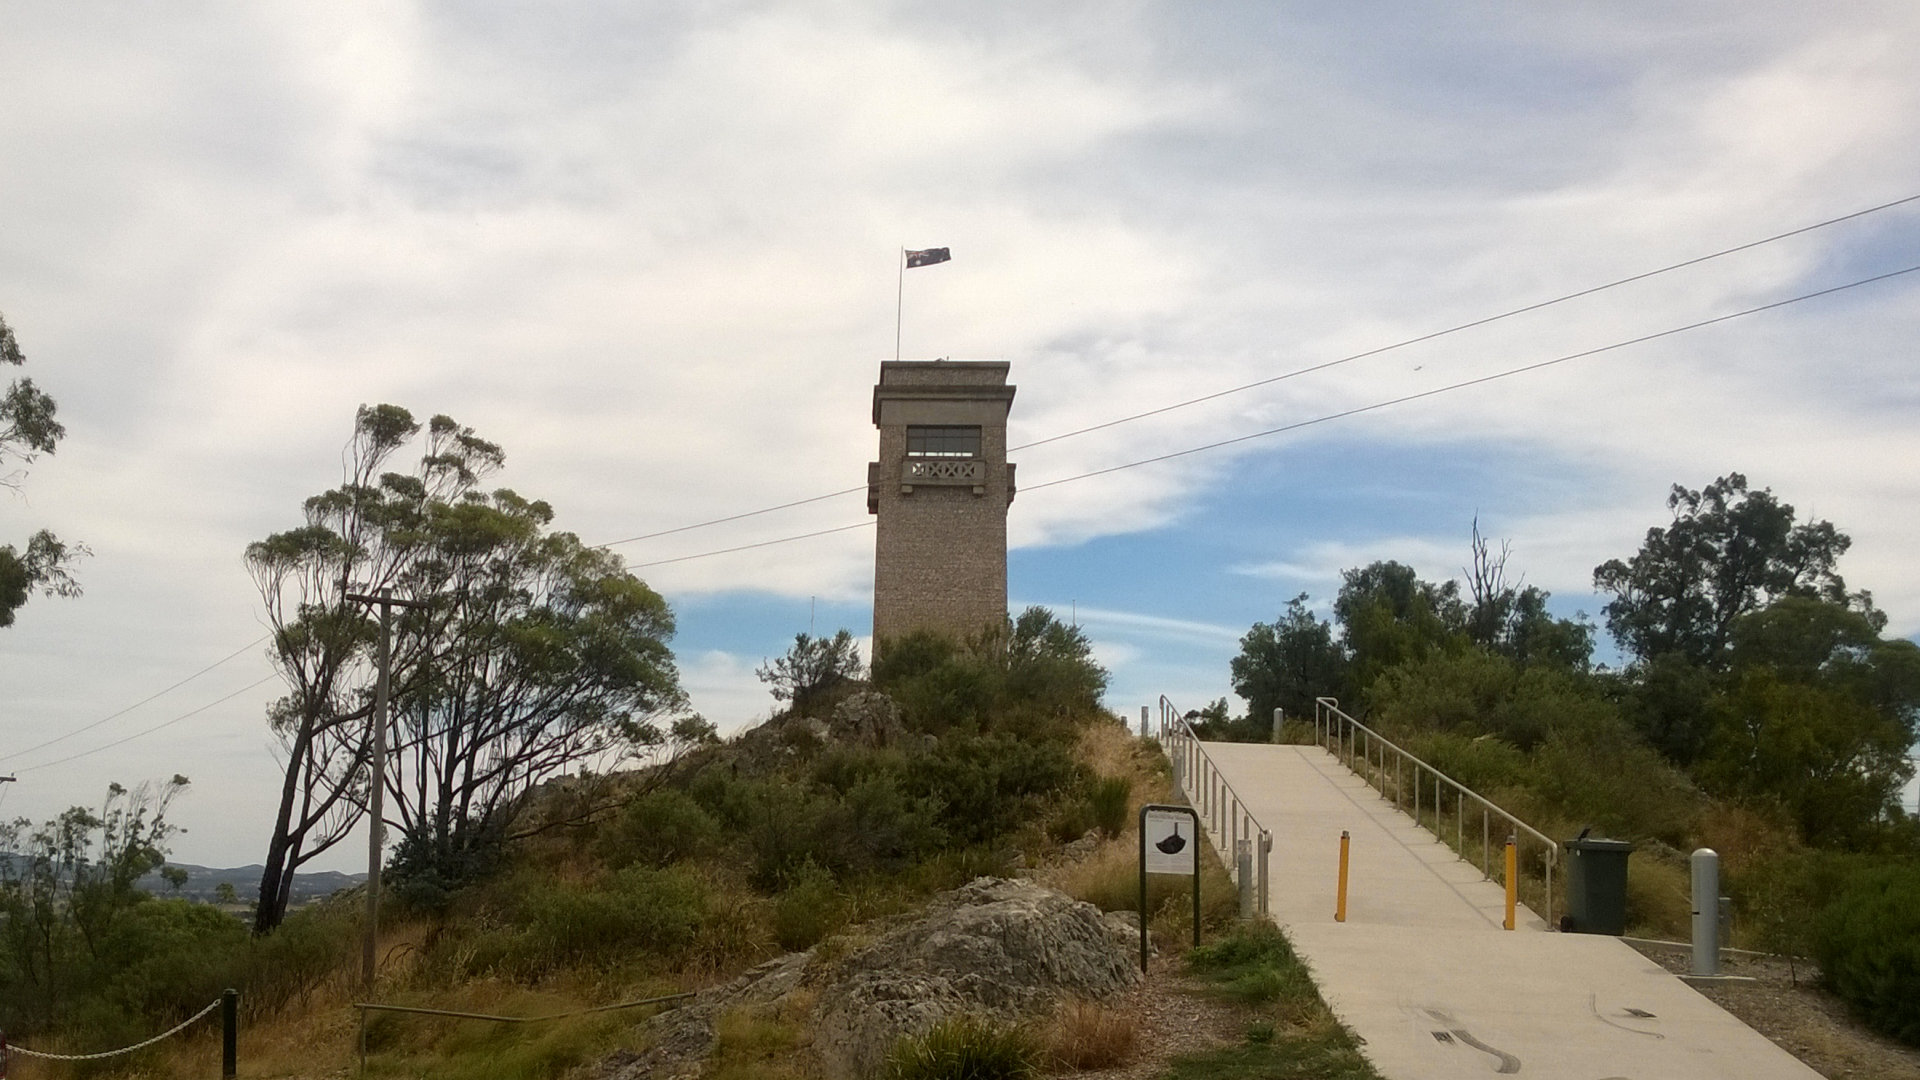 Looking at the stone tower from the parking area, built as a tribute to those of Goulburn who served in World War I. At the War Memorial Scenic Lookout on top of Rocky Hill in Goulburn